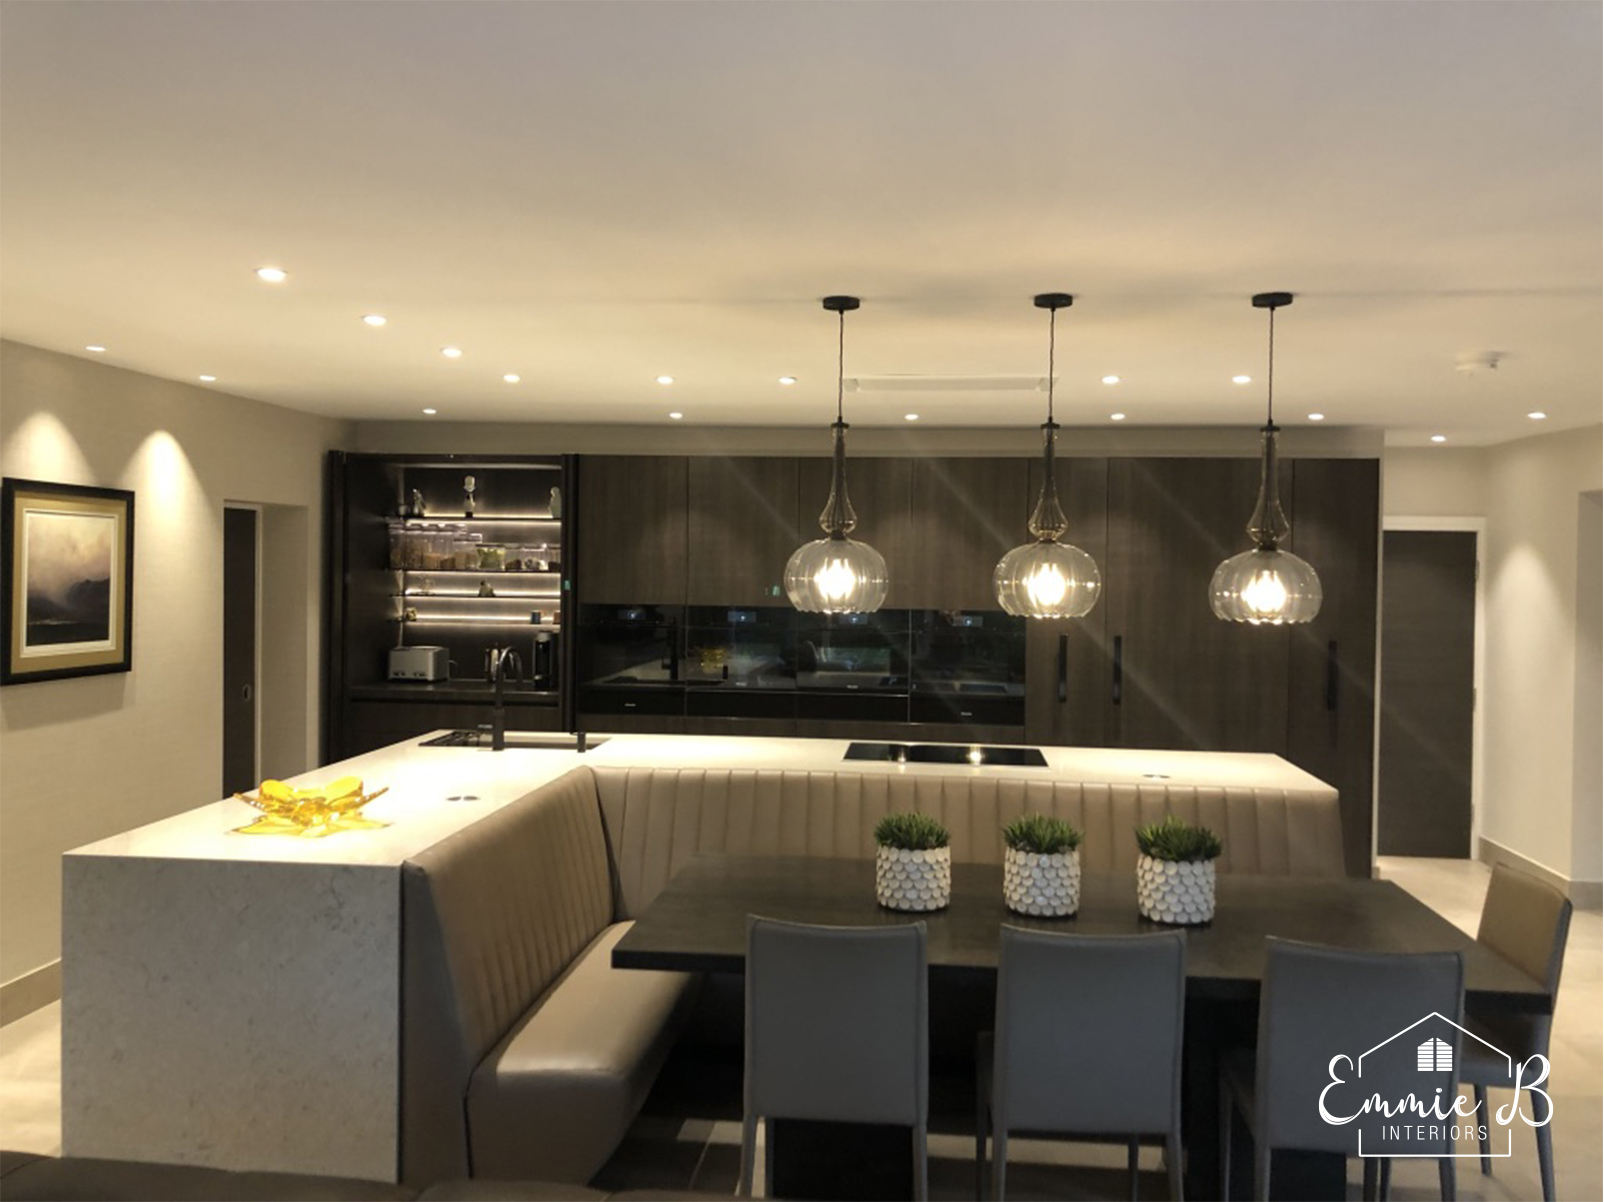 modern kitchen interior designer cheshire